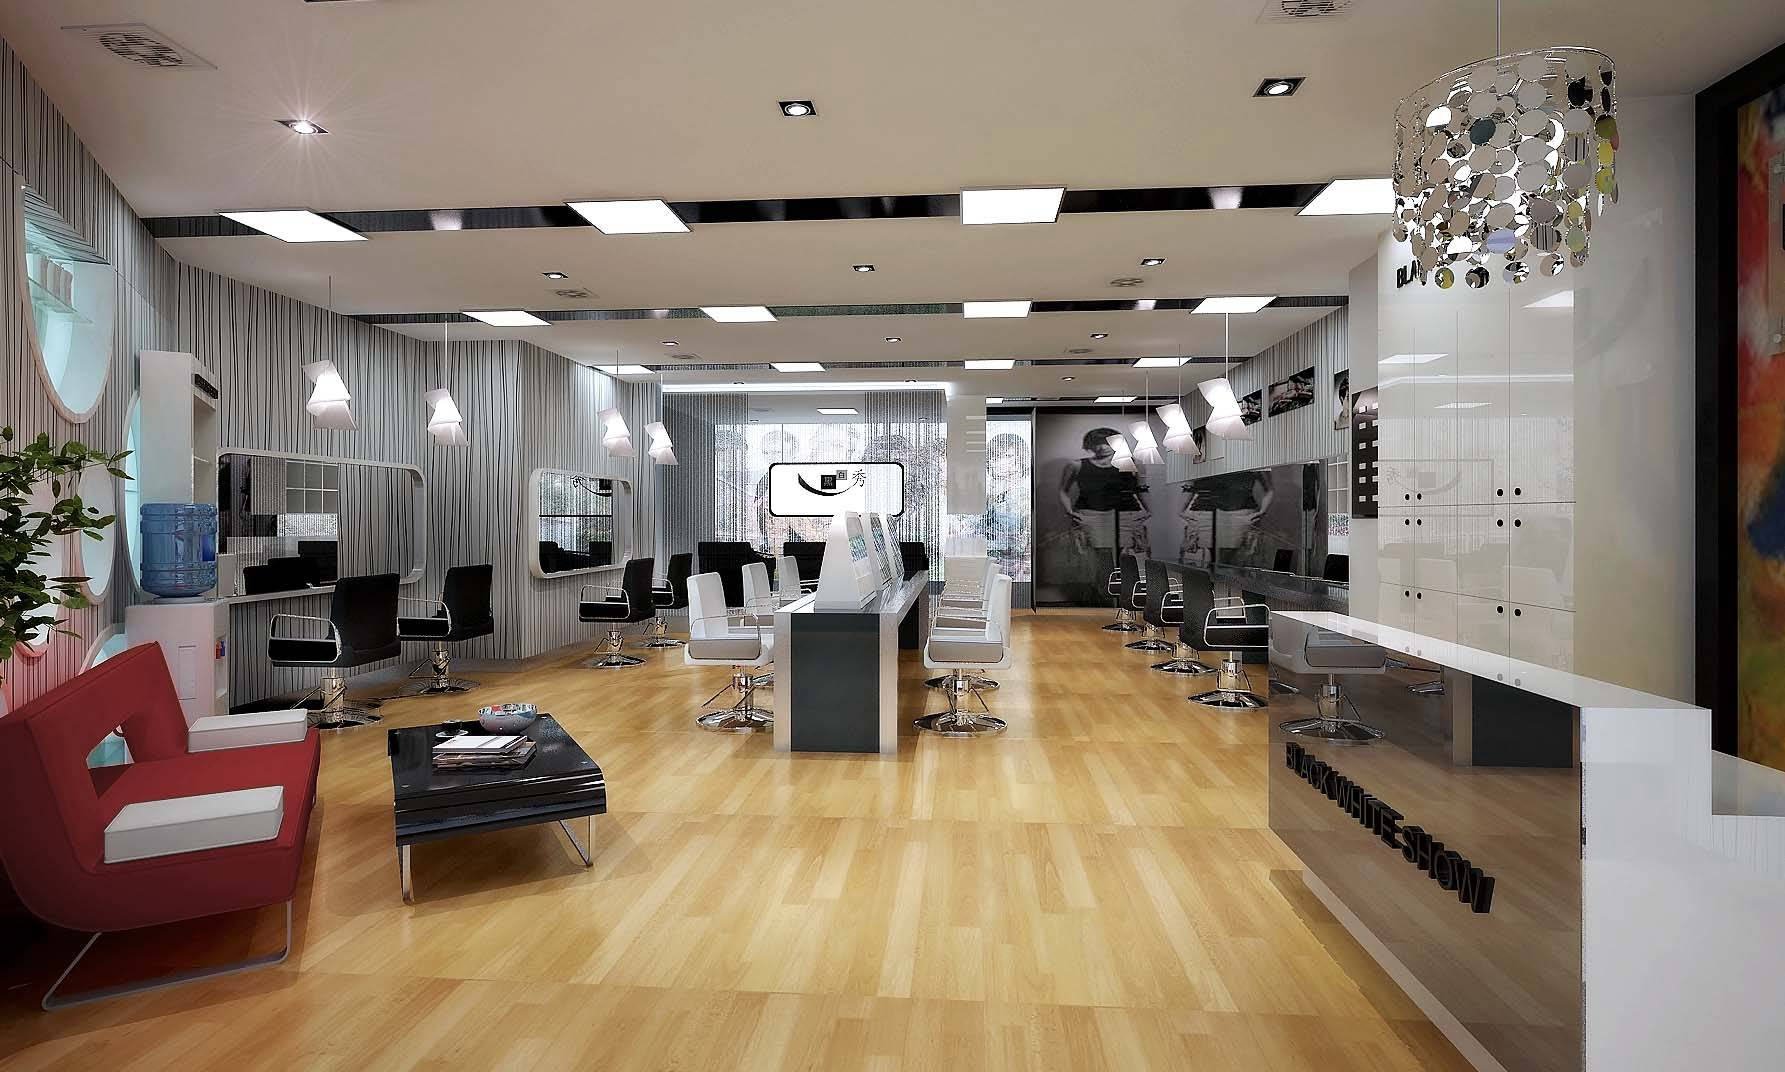 Modern Barber Interior 3D Model .max - CGTrader.